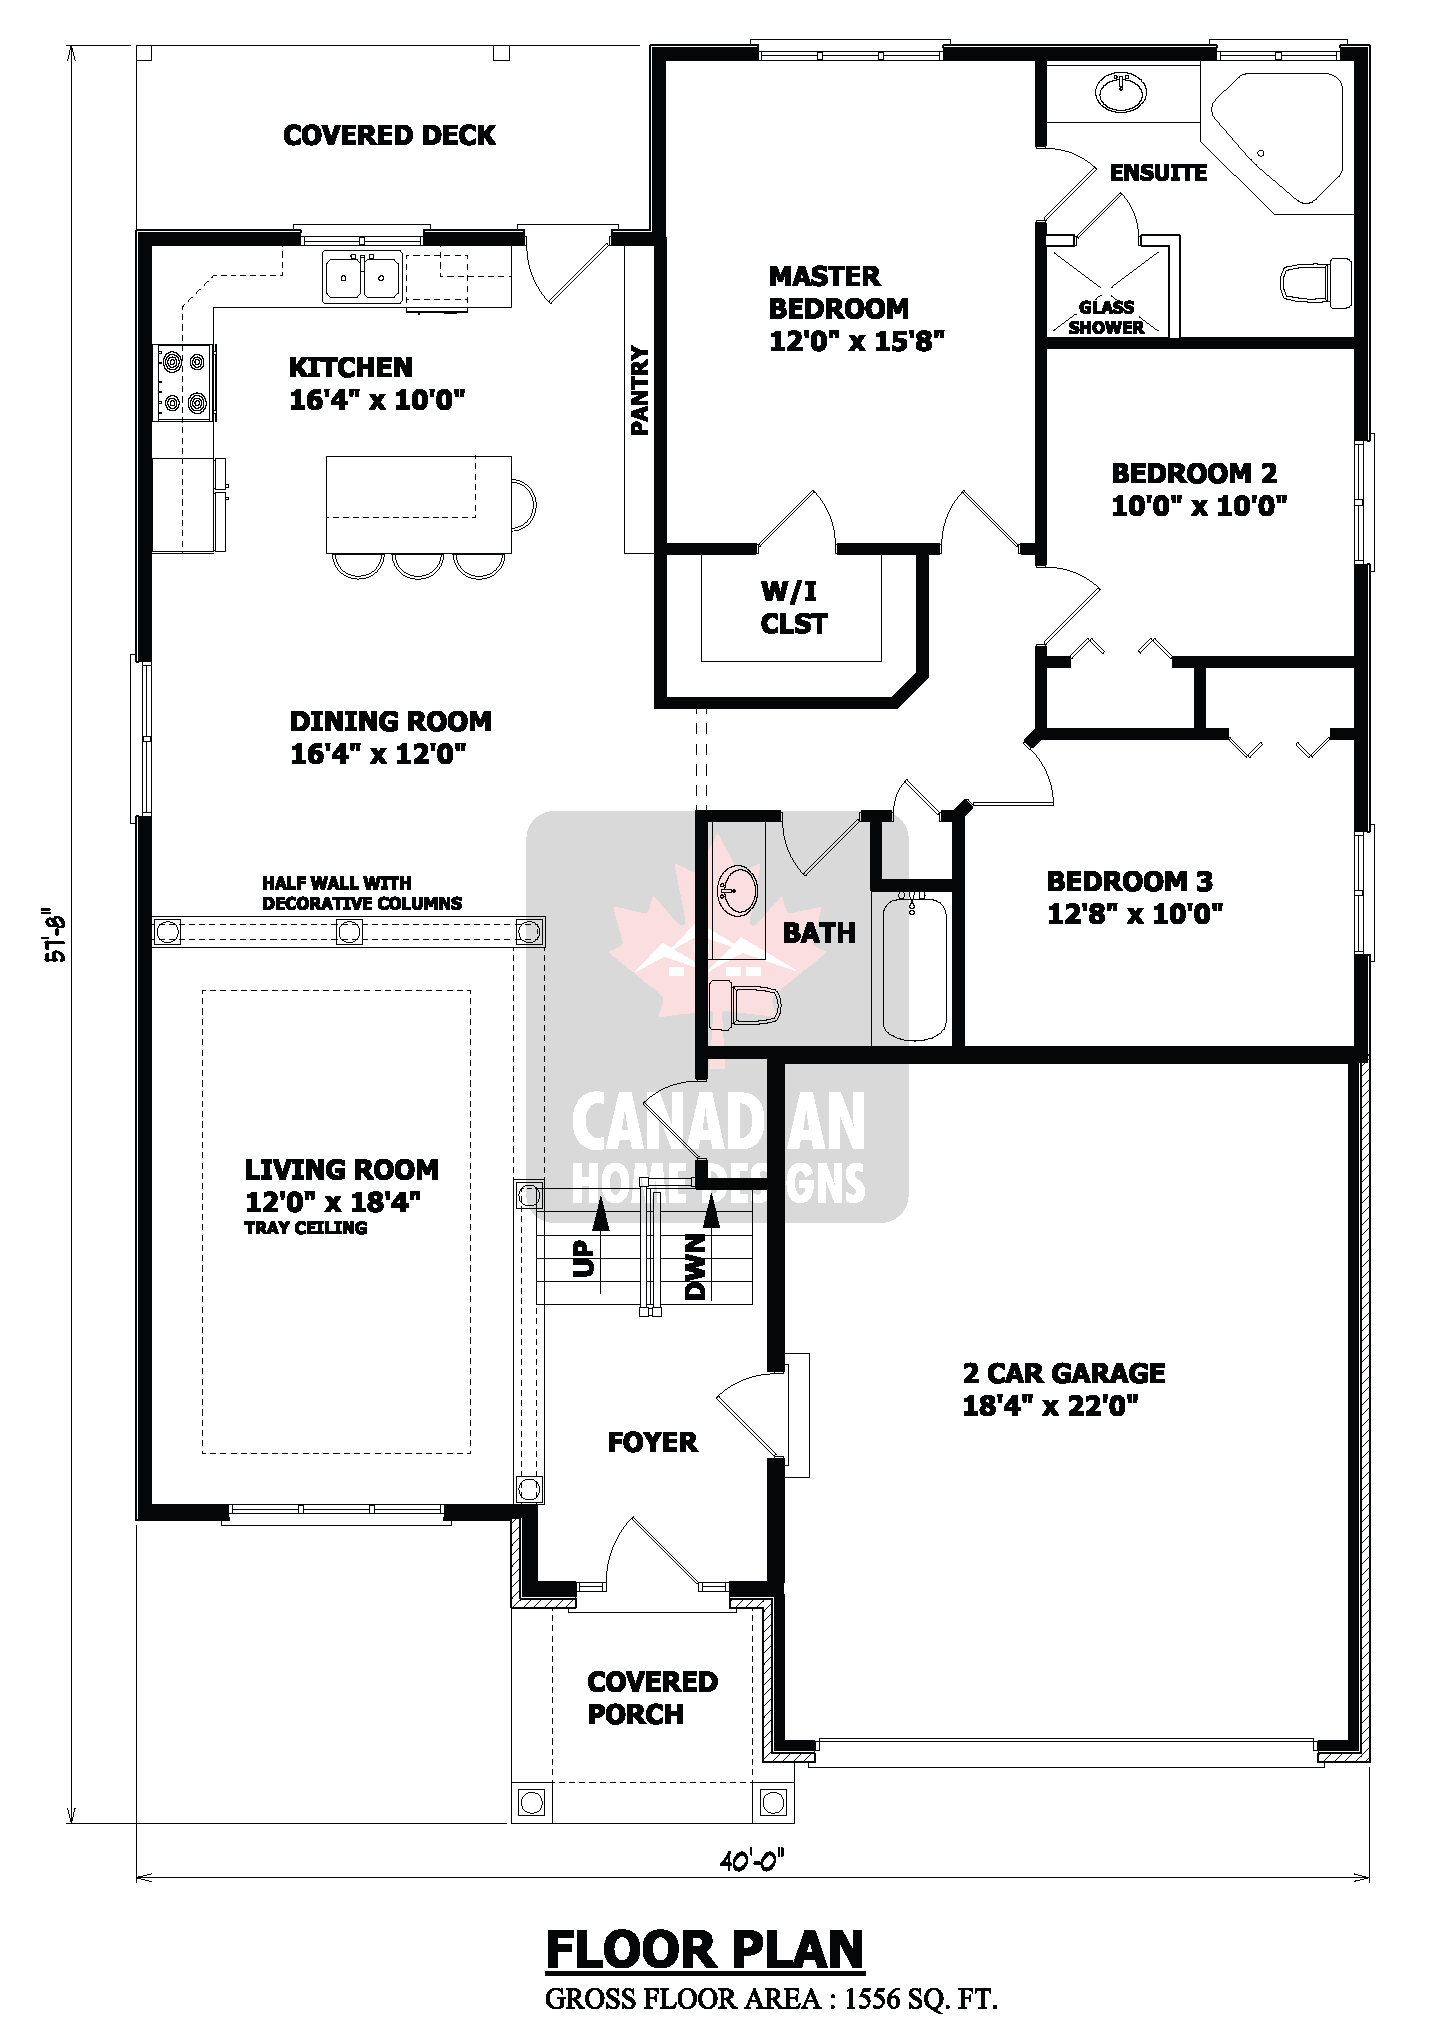 Tiny house floor plans house plans home plans floor Custom floor plans